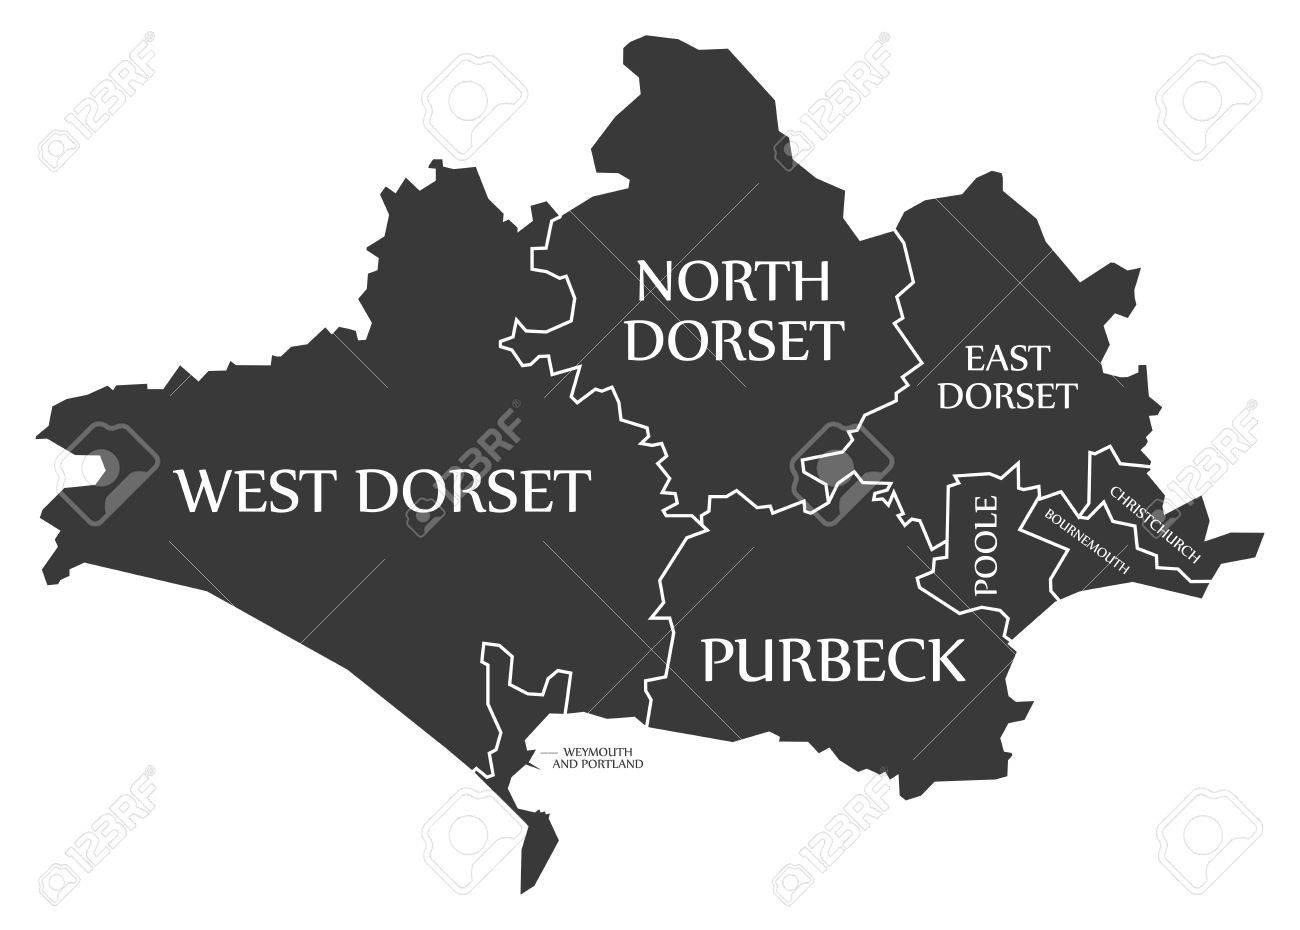 Dorset county England UK black map with white labels illustration